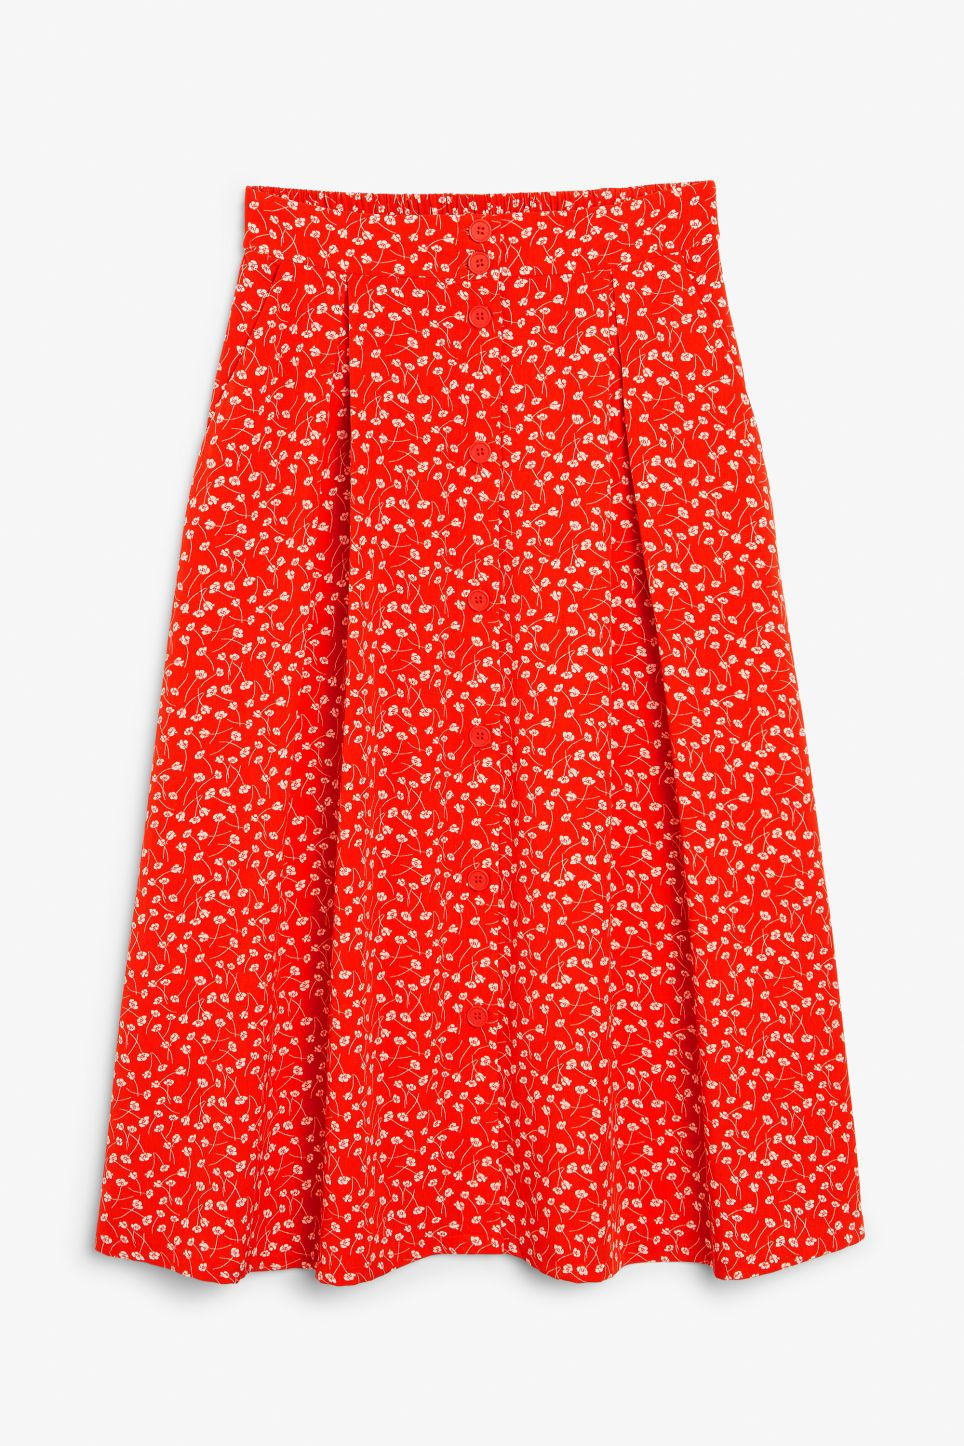 c03beb99ce6f Pleated midi skirt - Floral print - Skirts - Monki A flowy midi skirt with  slanted front pockets and buttons all the way down to the hem.